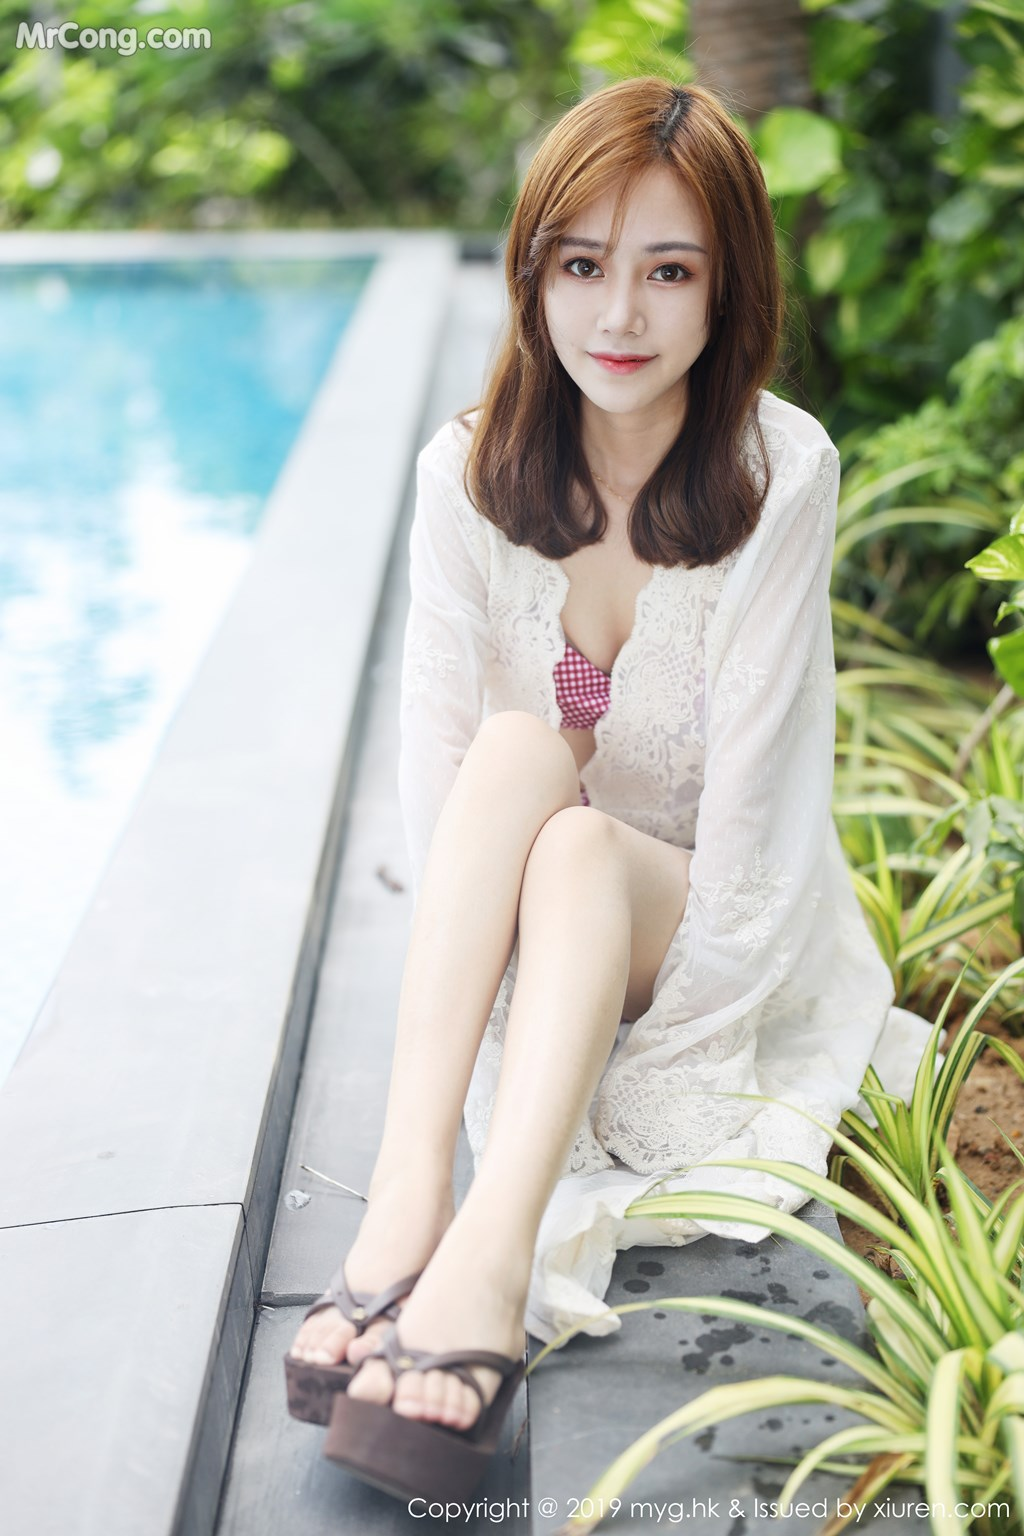 Image MyGirl-Vol.356-real-MrCong.com-005 in post MyGirl Vol.356: 羽住real (55 ảnh)